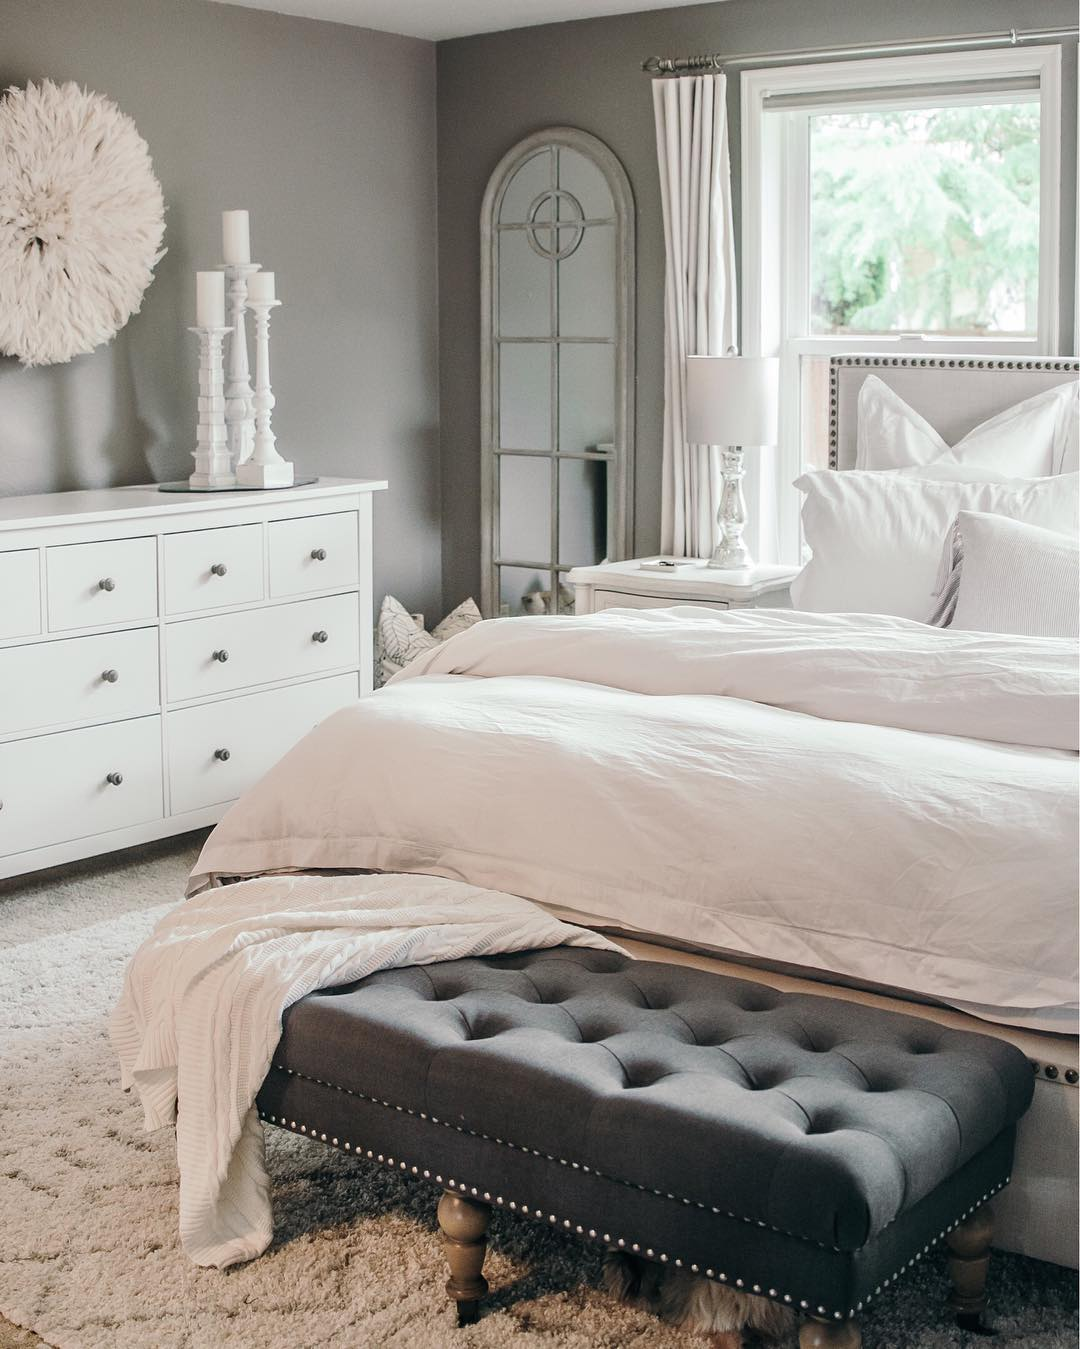 Houses Of Instagram A Bedroom In Calm Tones Of White And